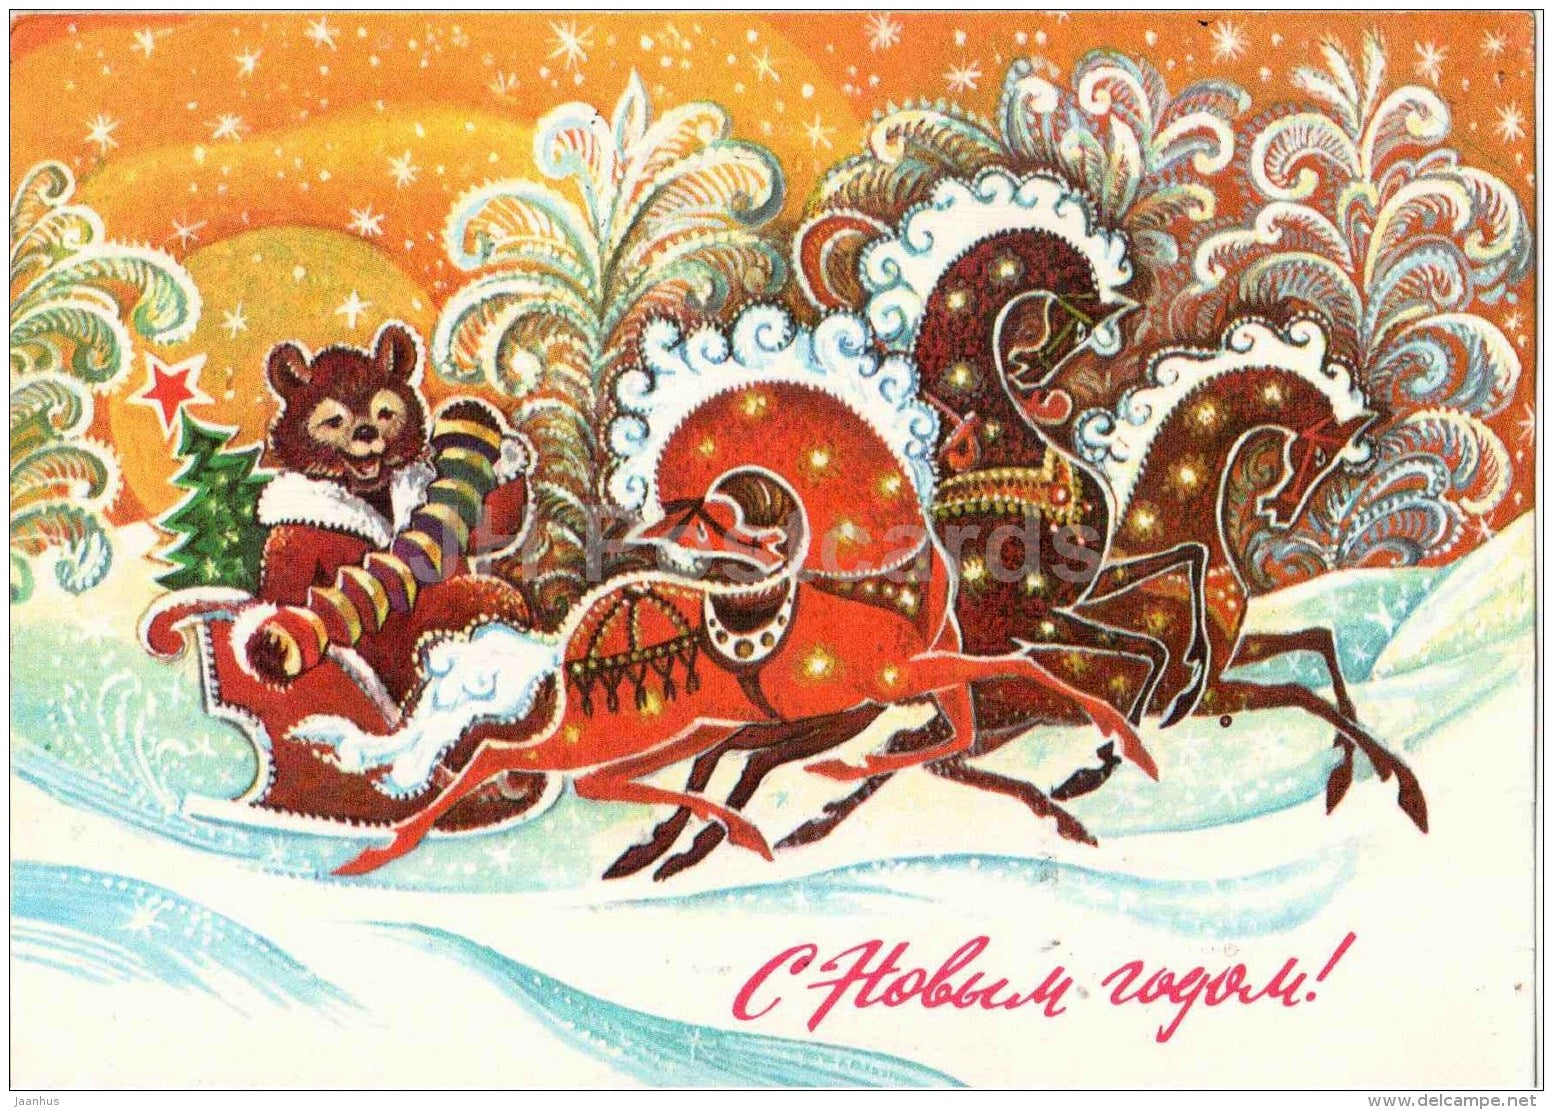 New Year Greeting Card by S. Gorlischev - 1 - russian Troika - horses - bear - postal stationery - 1978 - Russia USSR - JH Postcards